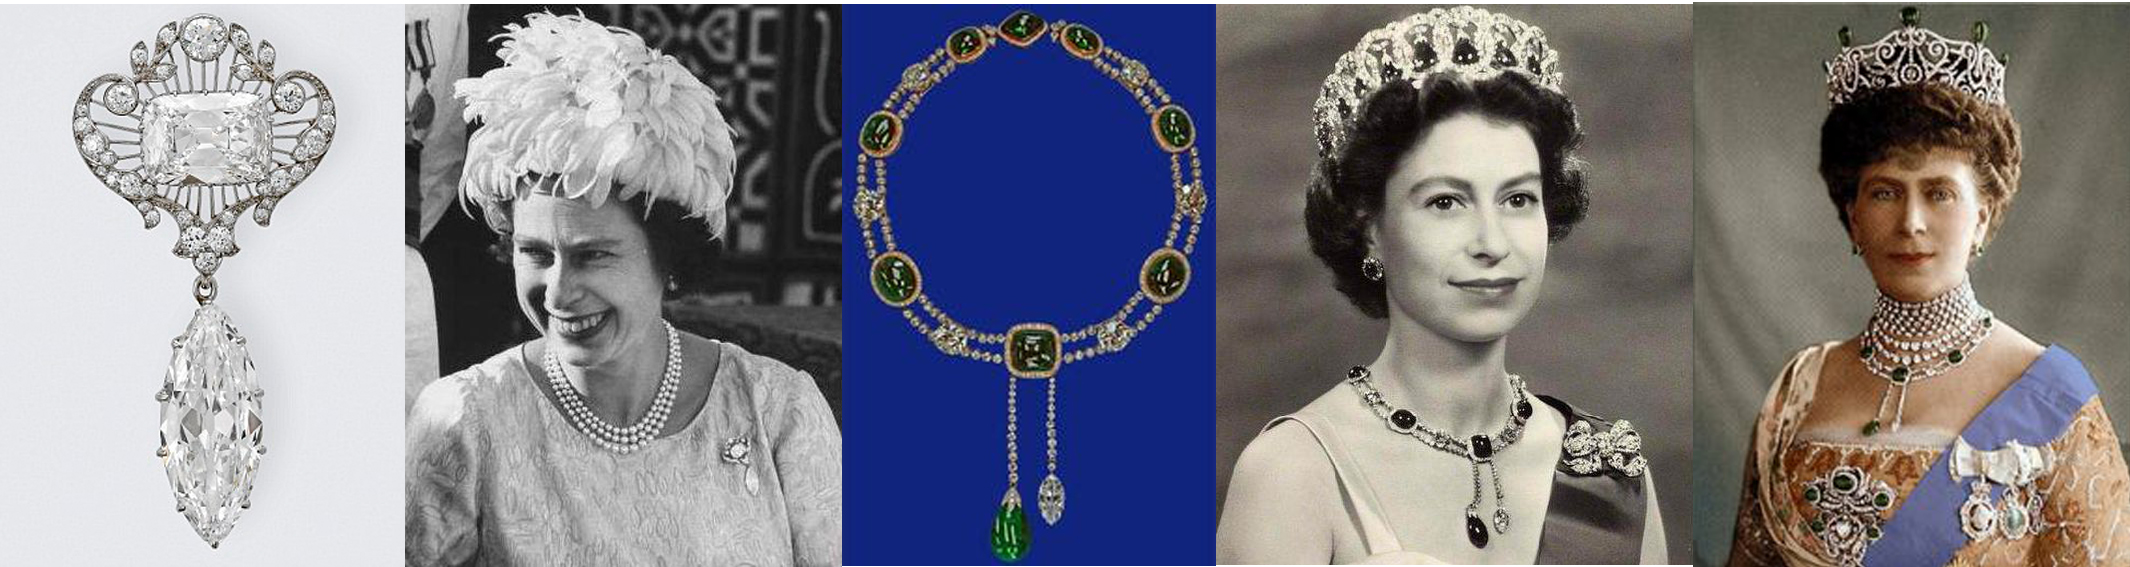 Left to Right:  Cullinan VI and VIII together as a brooch, Queen Elizabeth II wearing VI and VIII, Cullinan VII as a pendant in the Dehli Dubar (diamond and emerald) necklace, QEII in the Dehli Dubar Parure, Queen Mary in the Dehli Dubar Parure